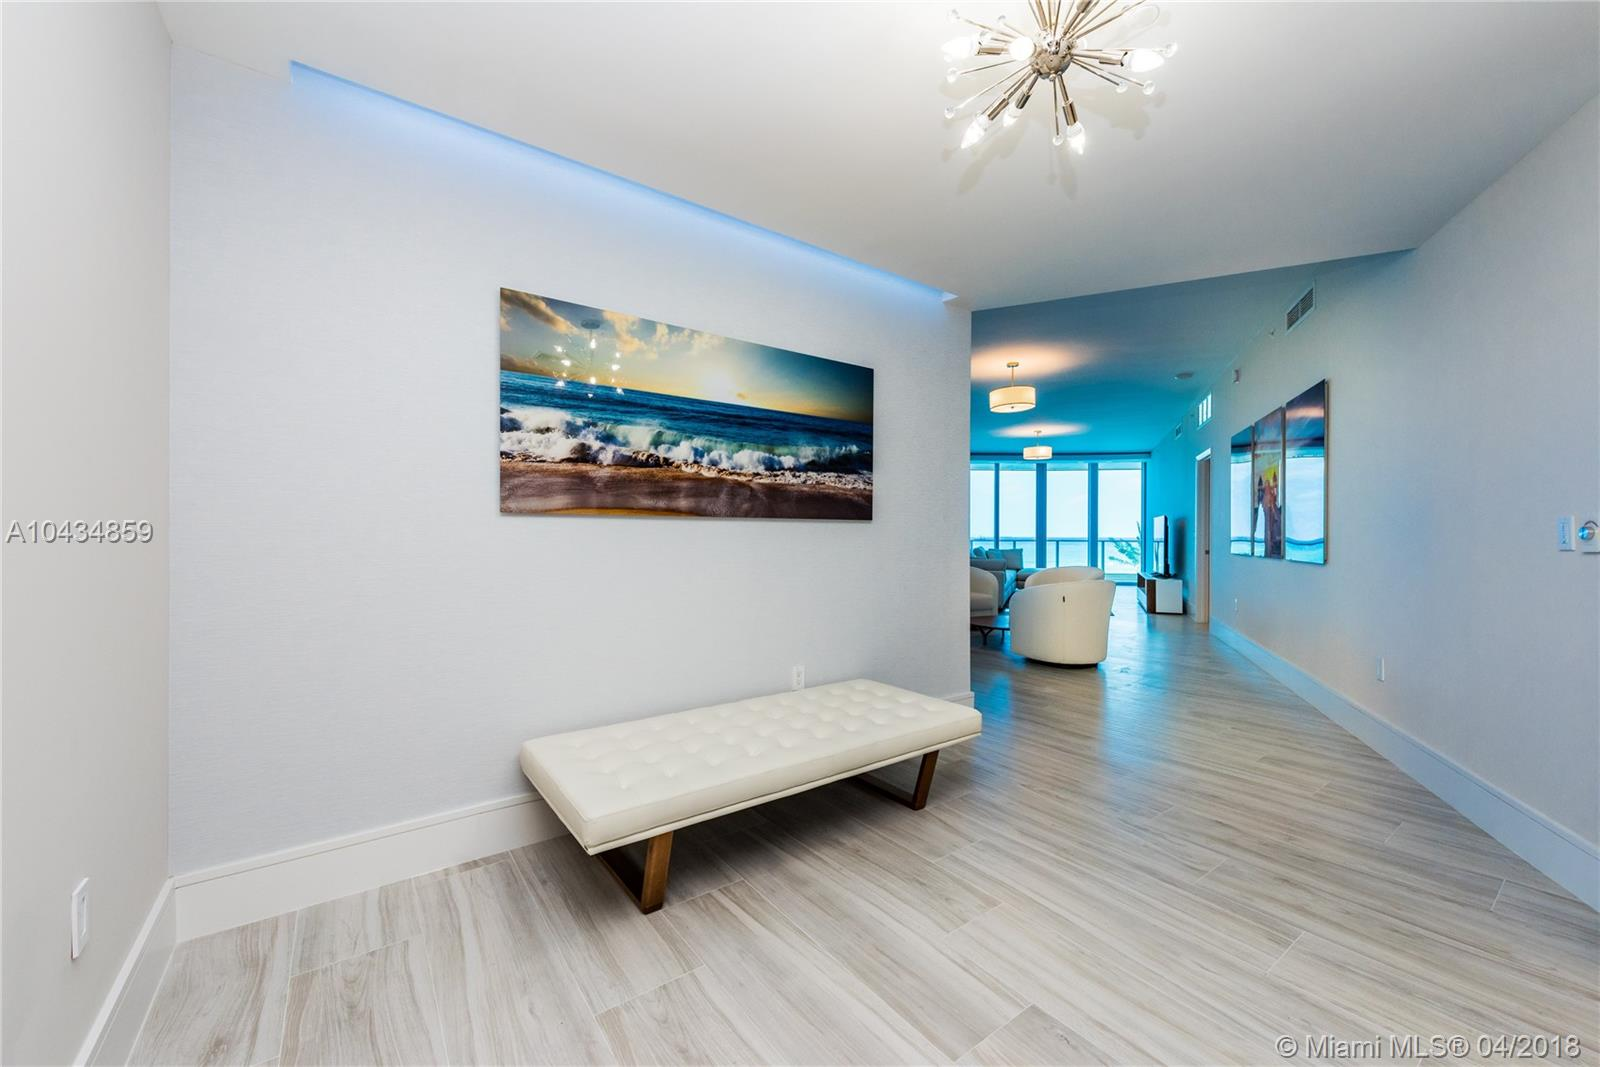 701 N Fort Lauderdale Beach Blvd, #502, Fort Lauderdale, FL, 33304 ...